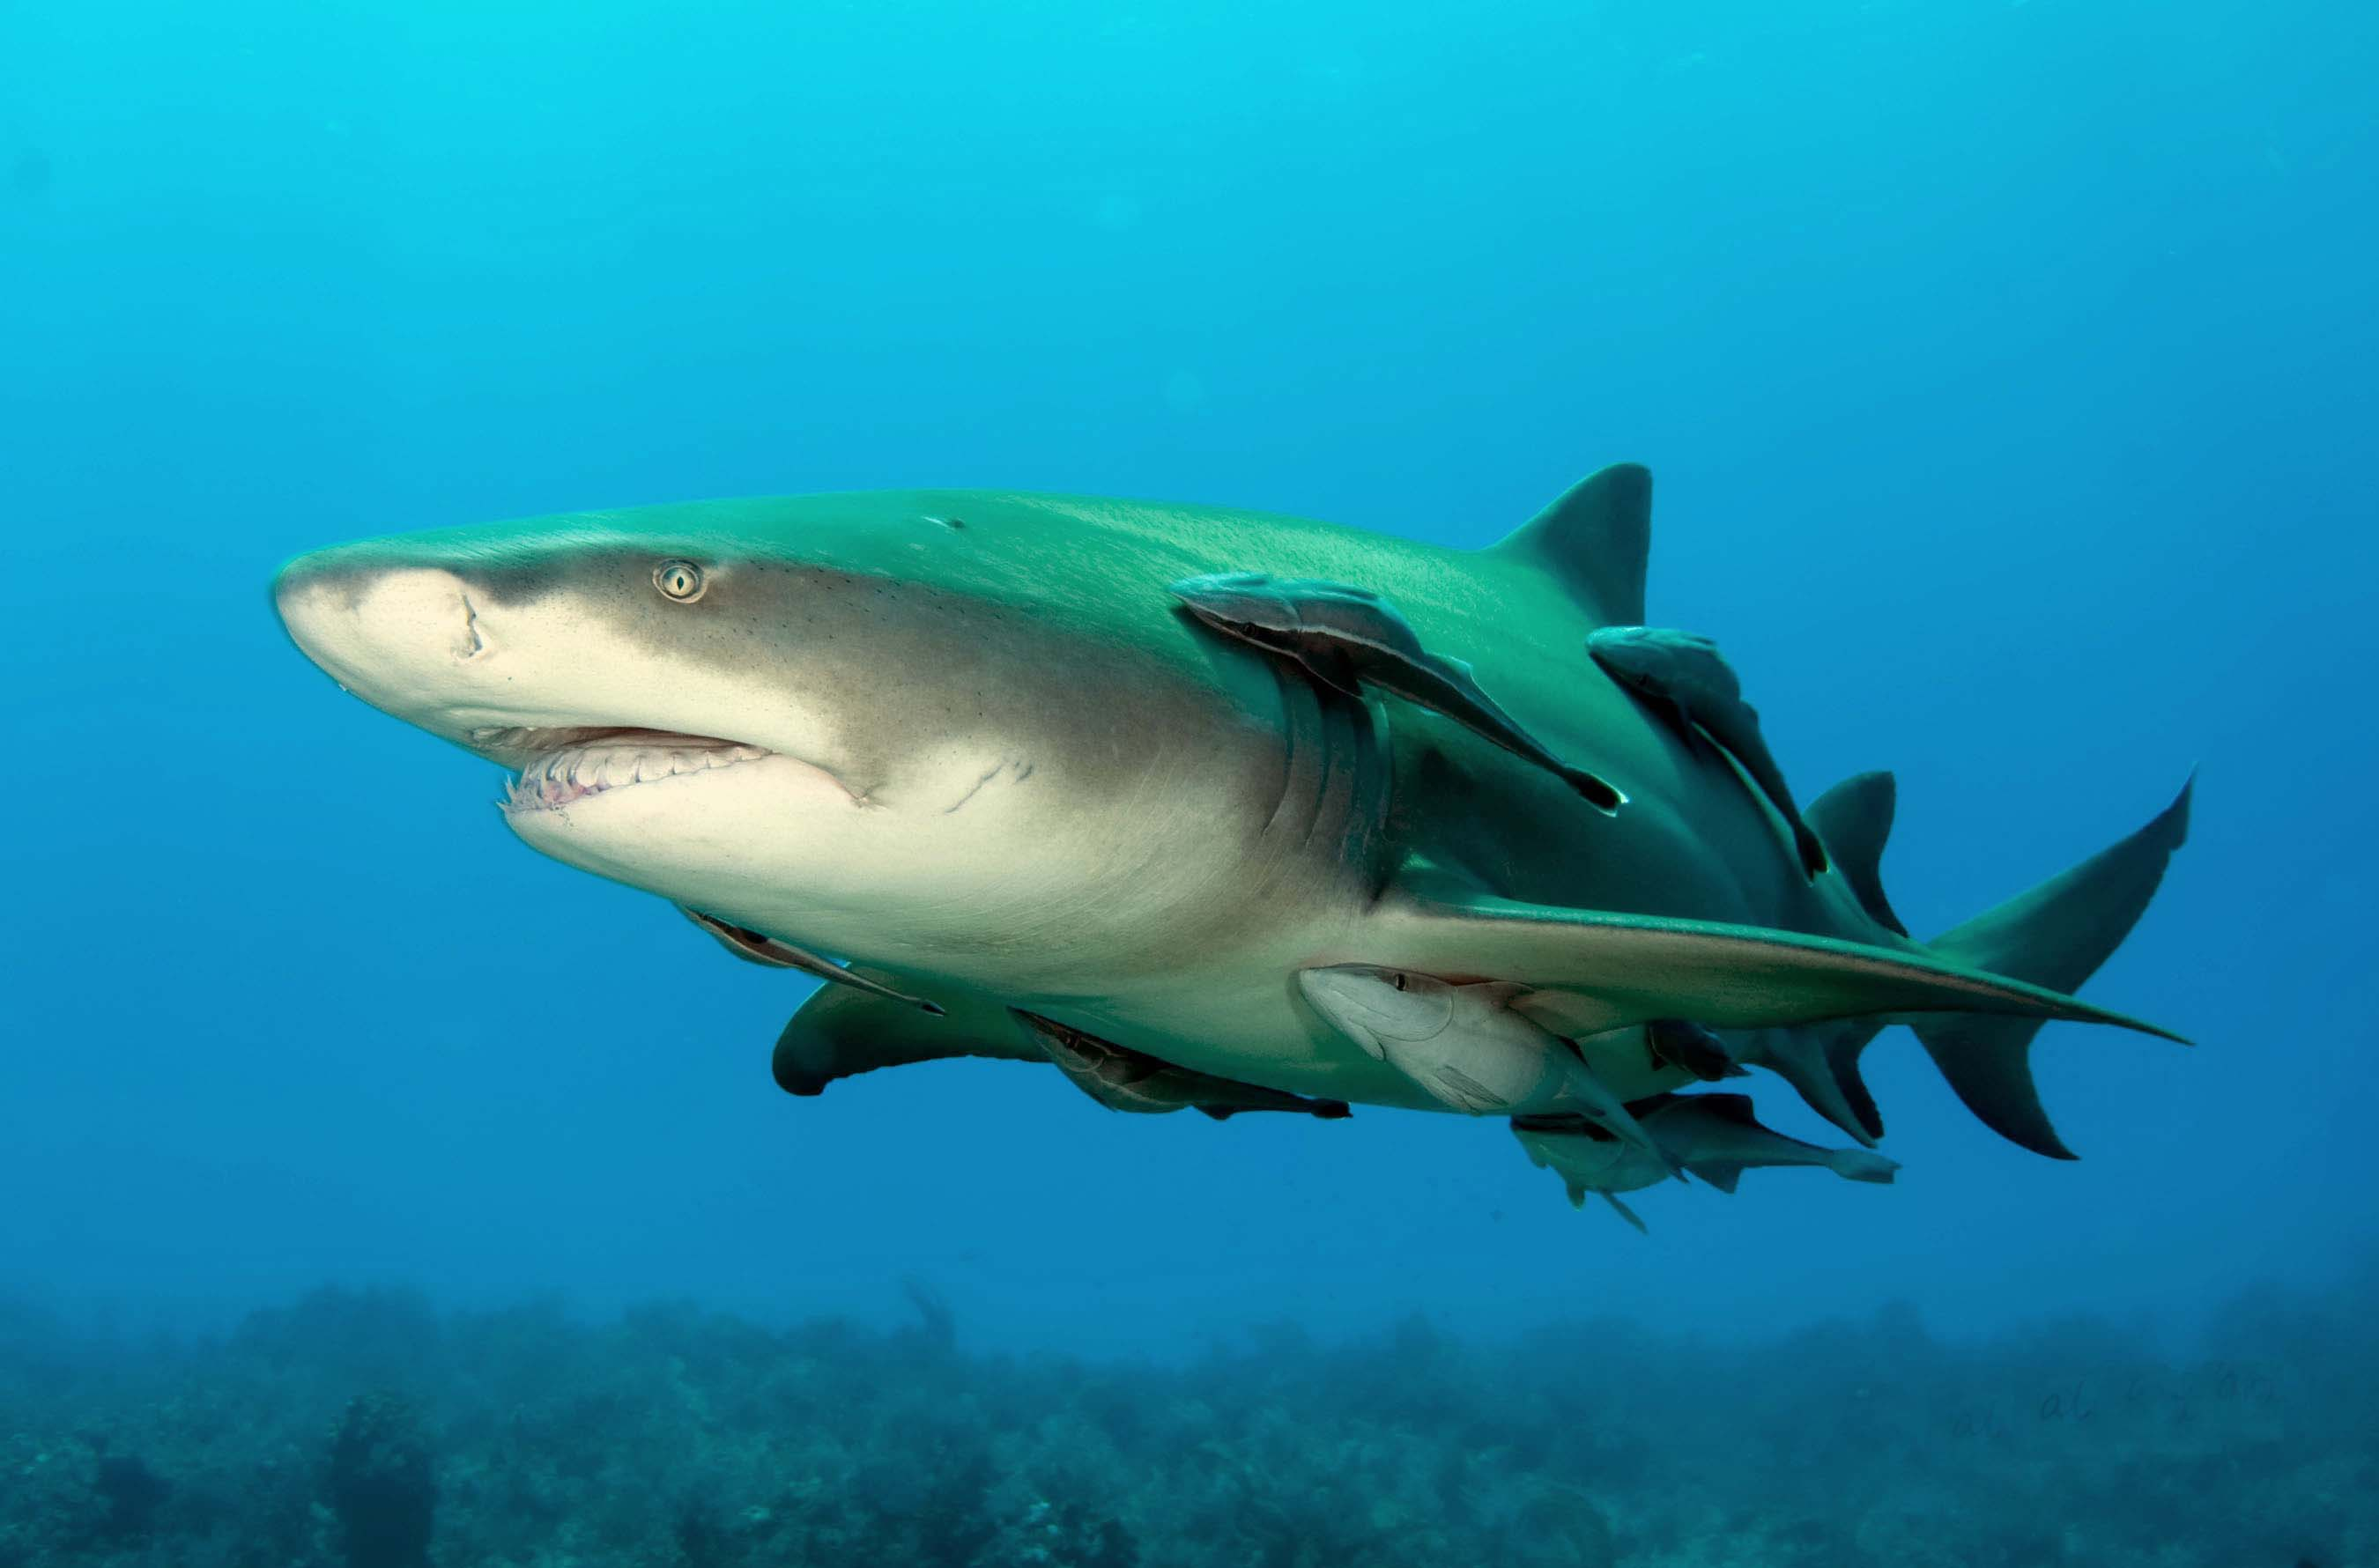 Predators Prowling The Sea Scary Or Stunning Sharks Are